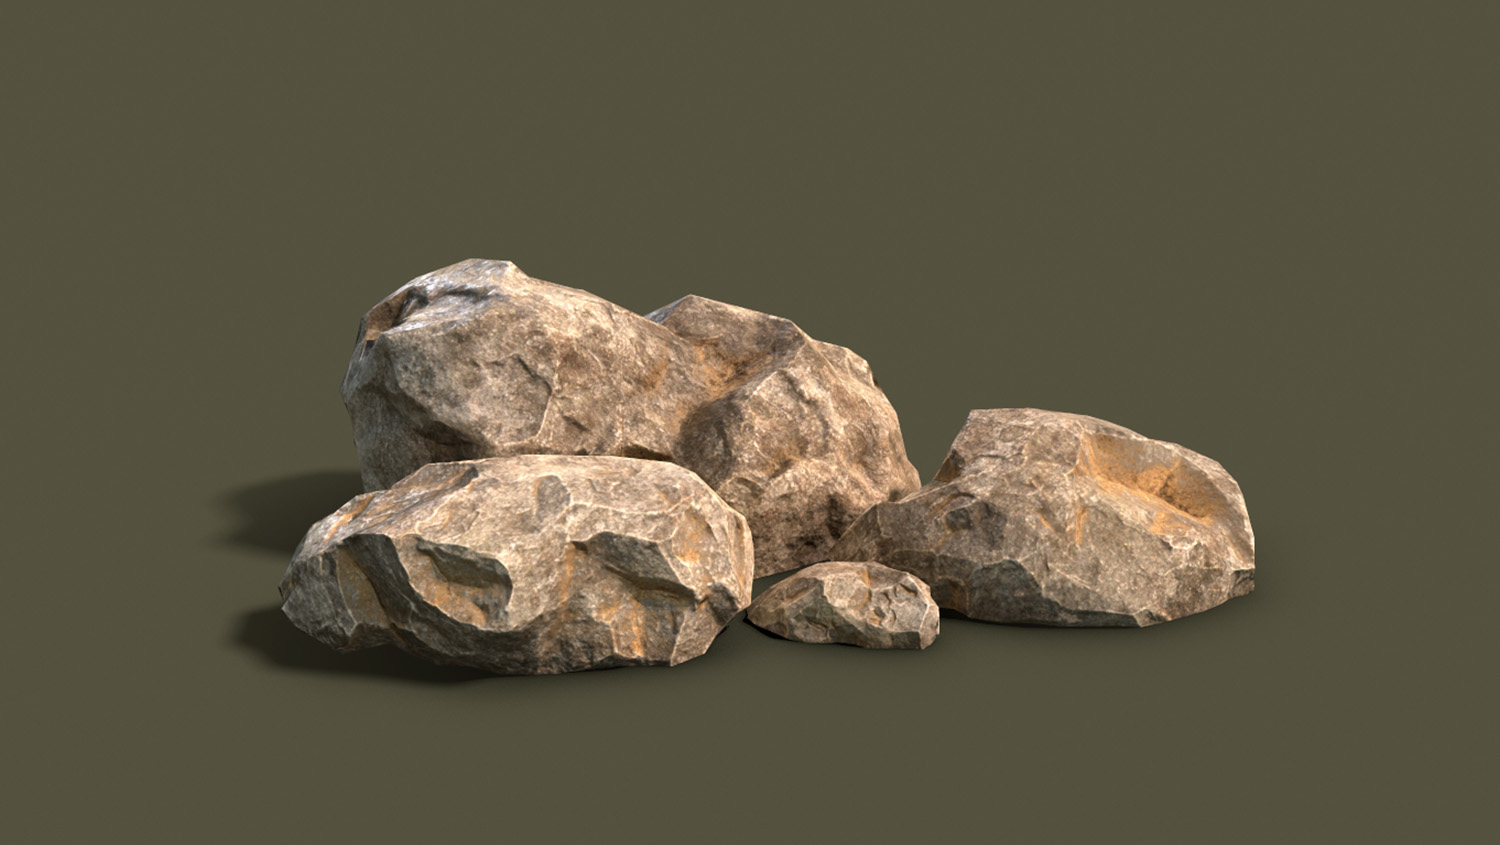 render of a collection of rocks